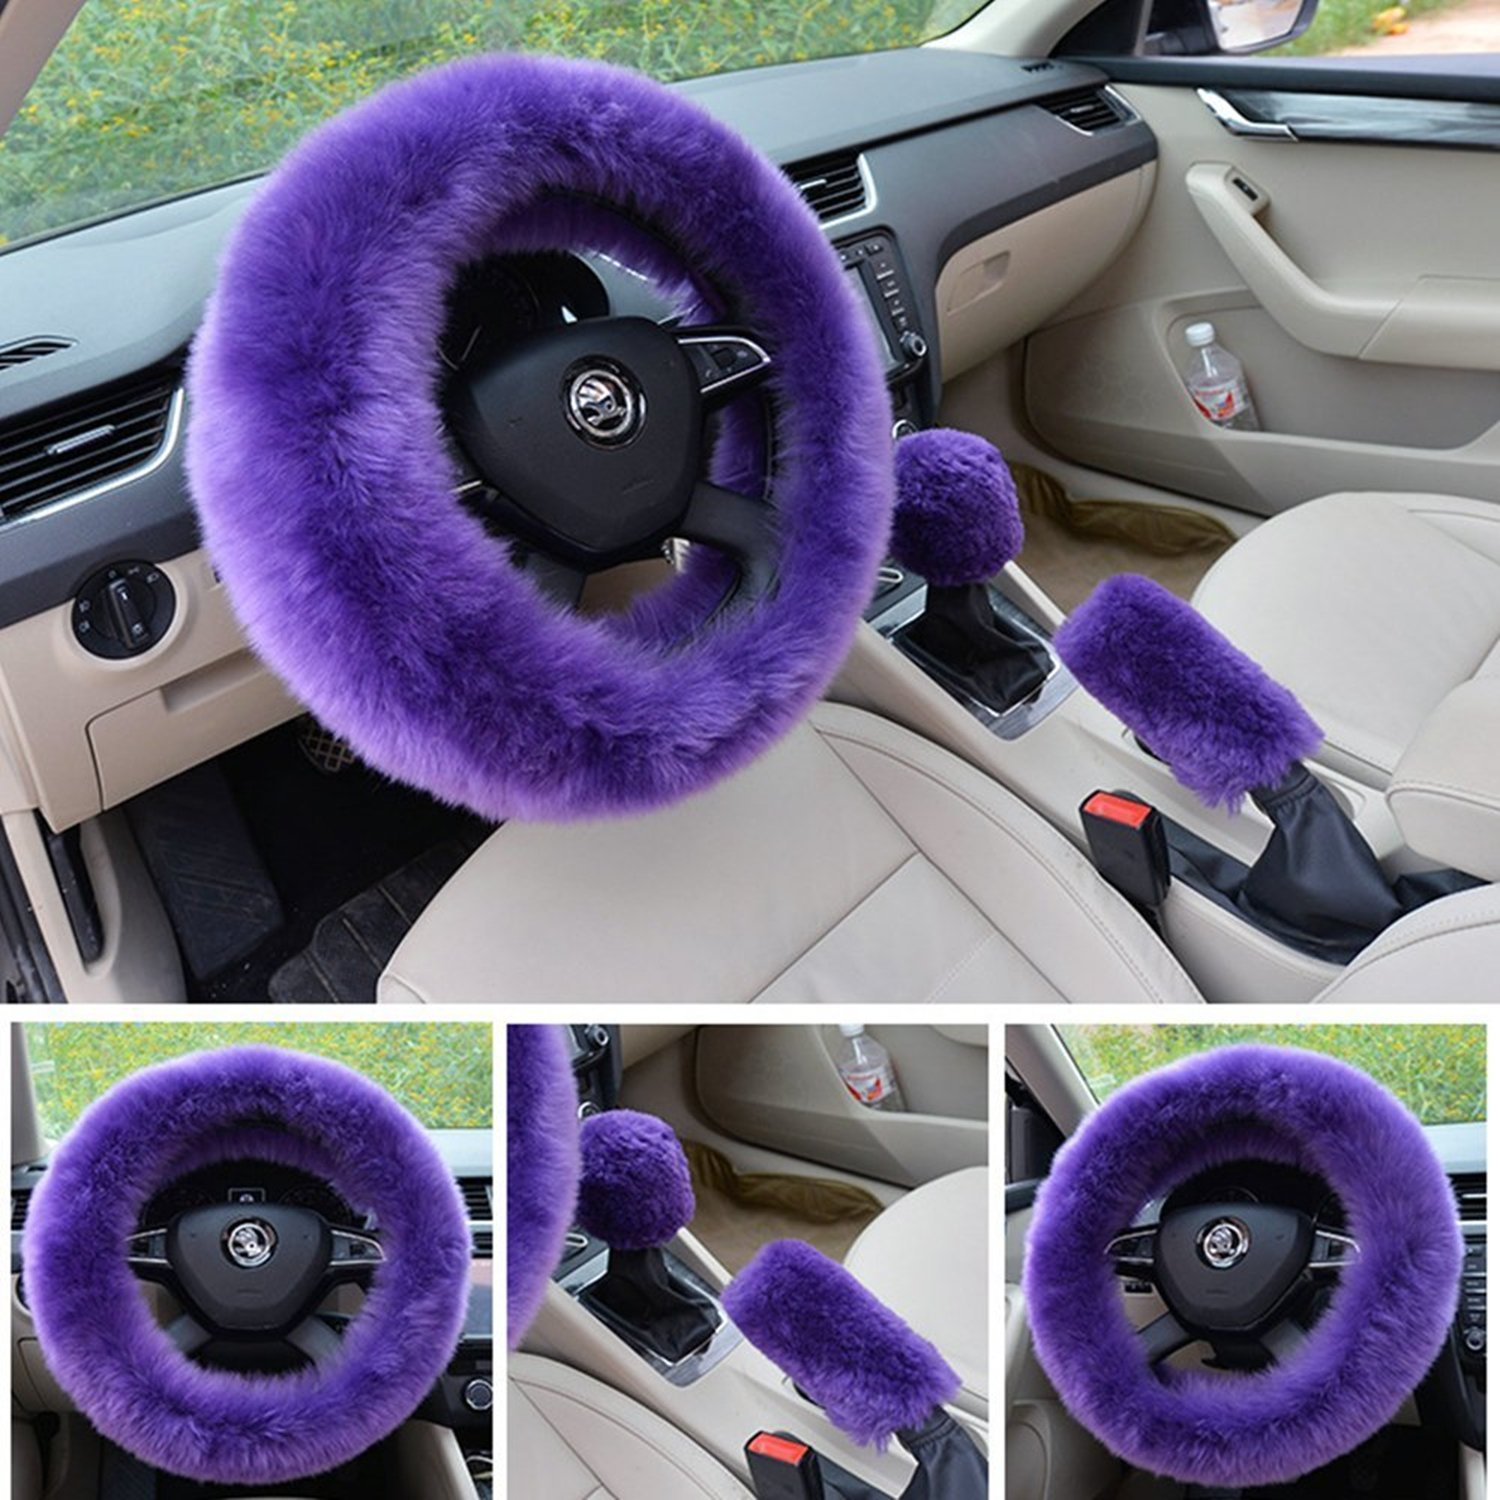 Pink Winter Warm Wool Handbrake Cover Gear Shift Cover Steering Wheel Cover 38cm diameter 1 Set 3 Pcs